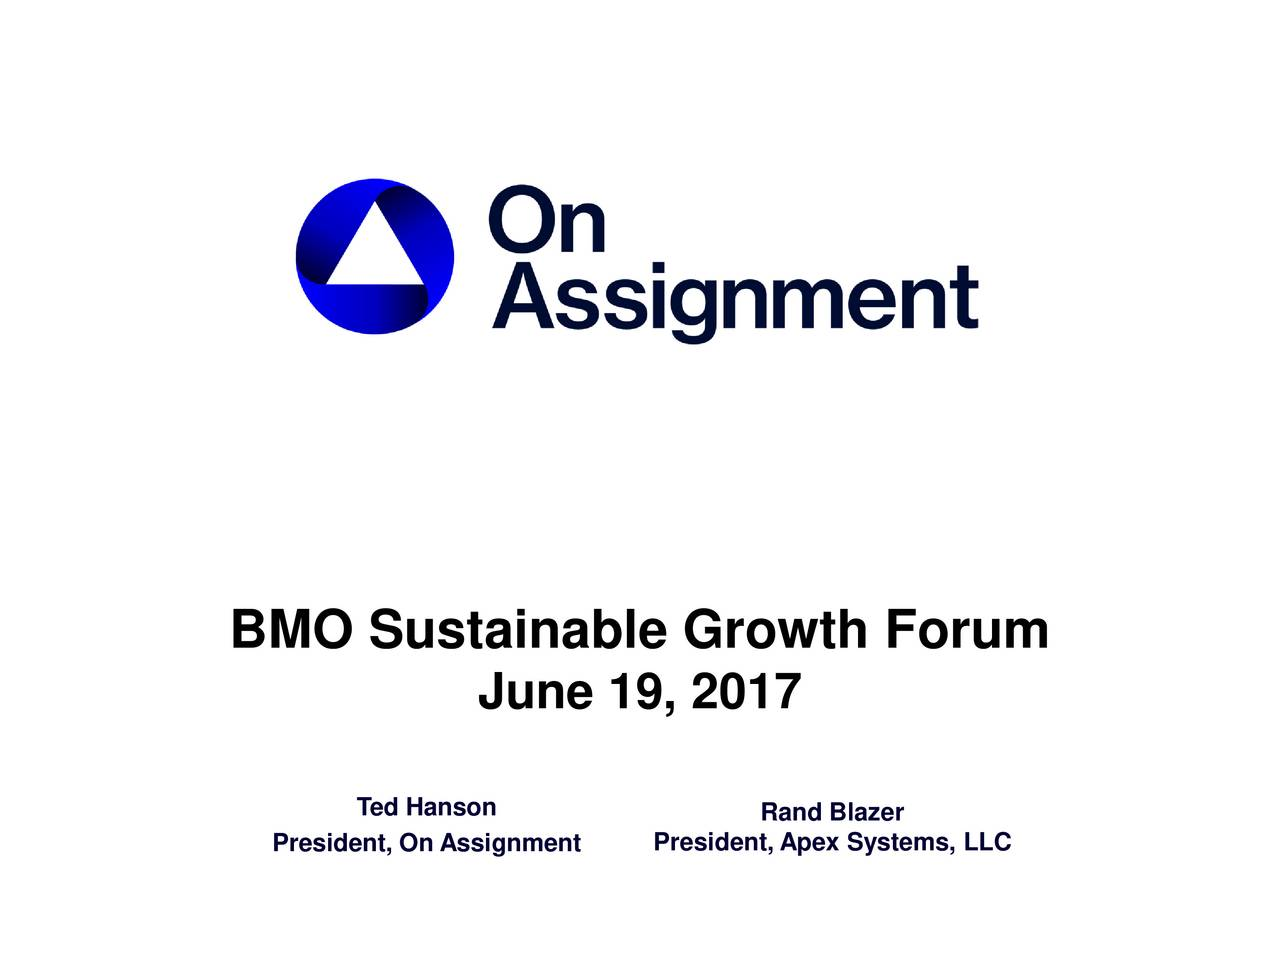 On Assignment (ASGN) Presents At BMO Sustainable Growth